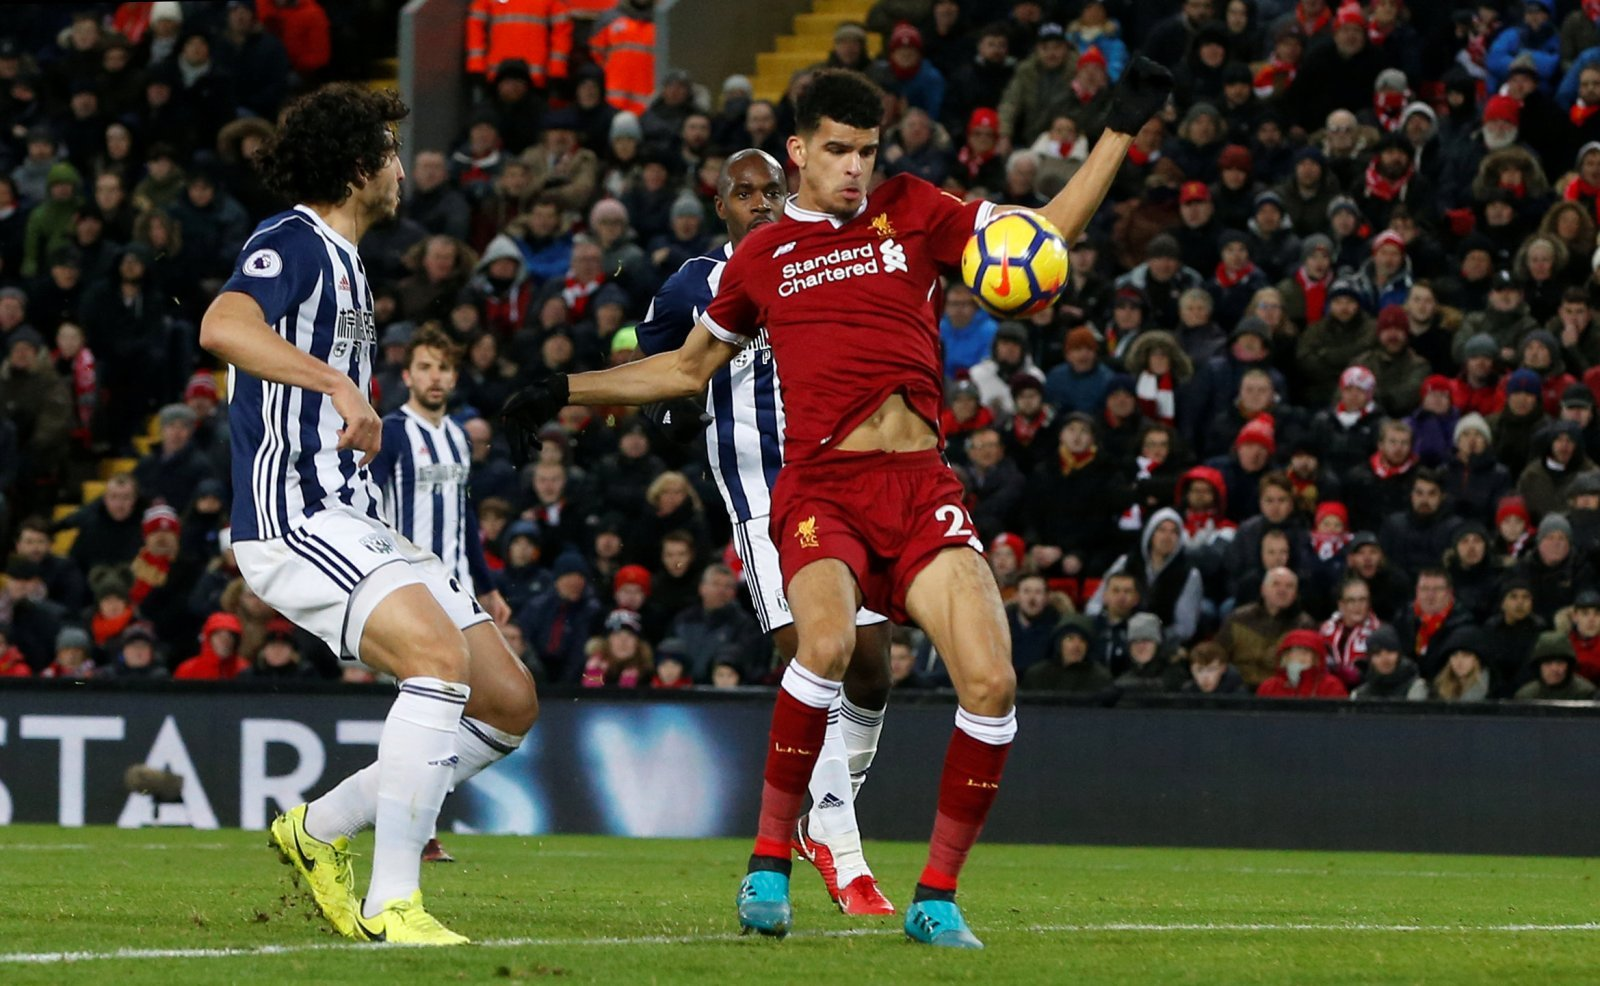 Dominic Solanke is a much better option than Abraham at Palace